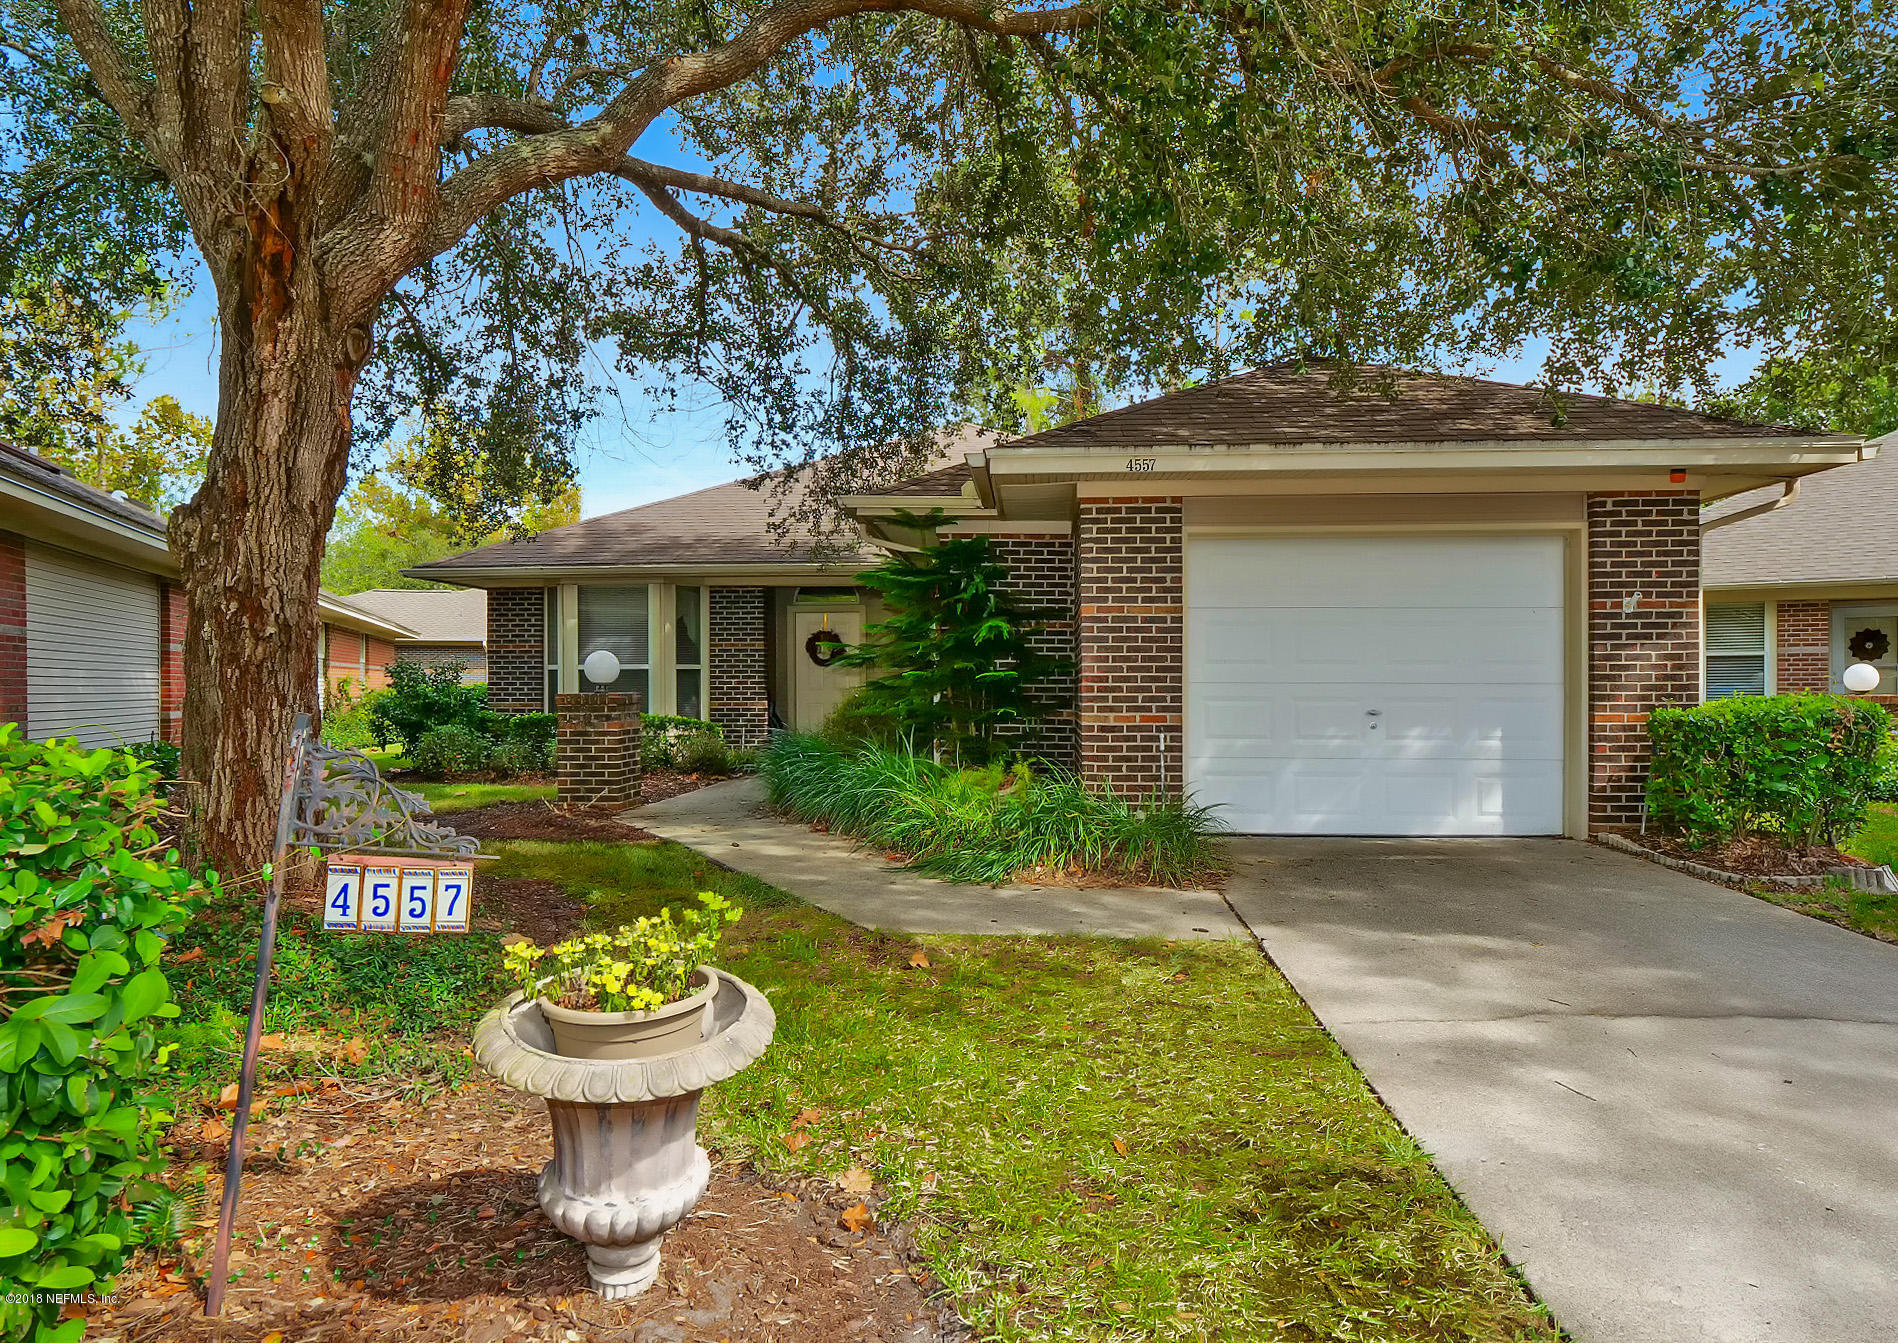 4557 MIDDLETON PARK, JACKSONVILLE, FLORIDA 32224, 2 Bedrooms Bedrooms, ,2 BathroomsBathrooms,Residential - single family,For sale,MIDDLETON PARK,965272